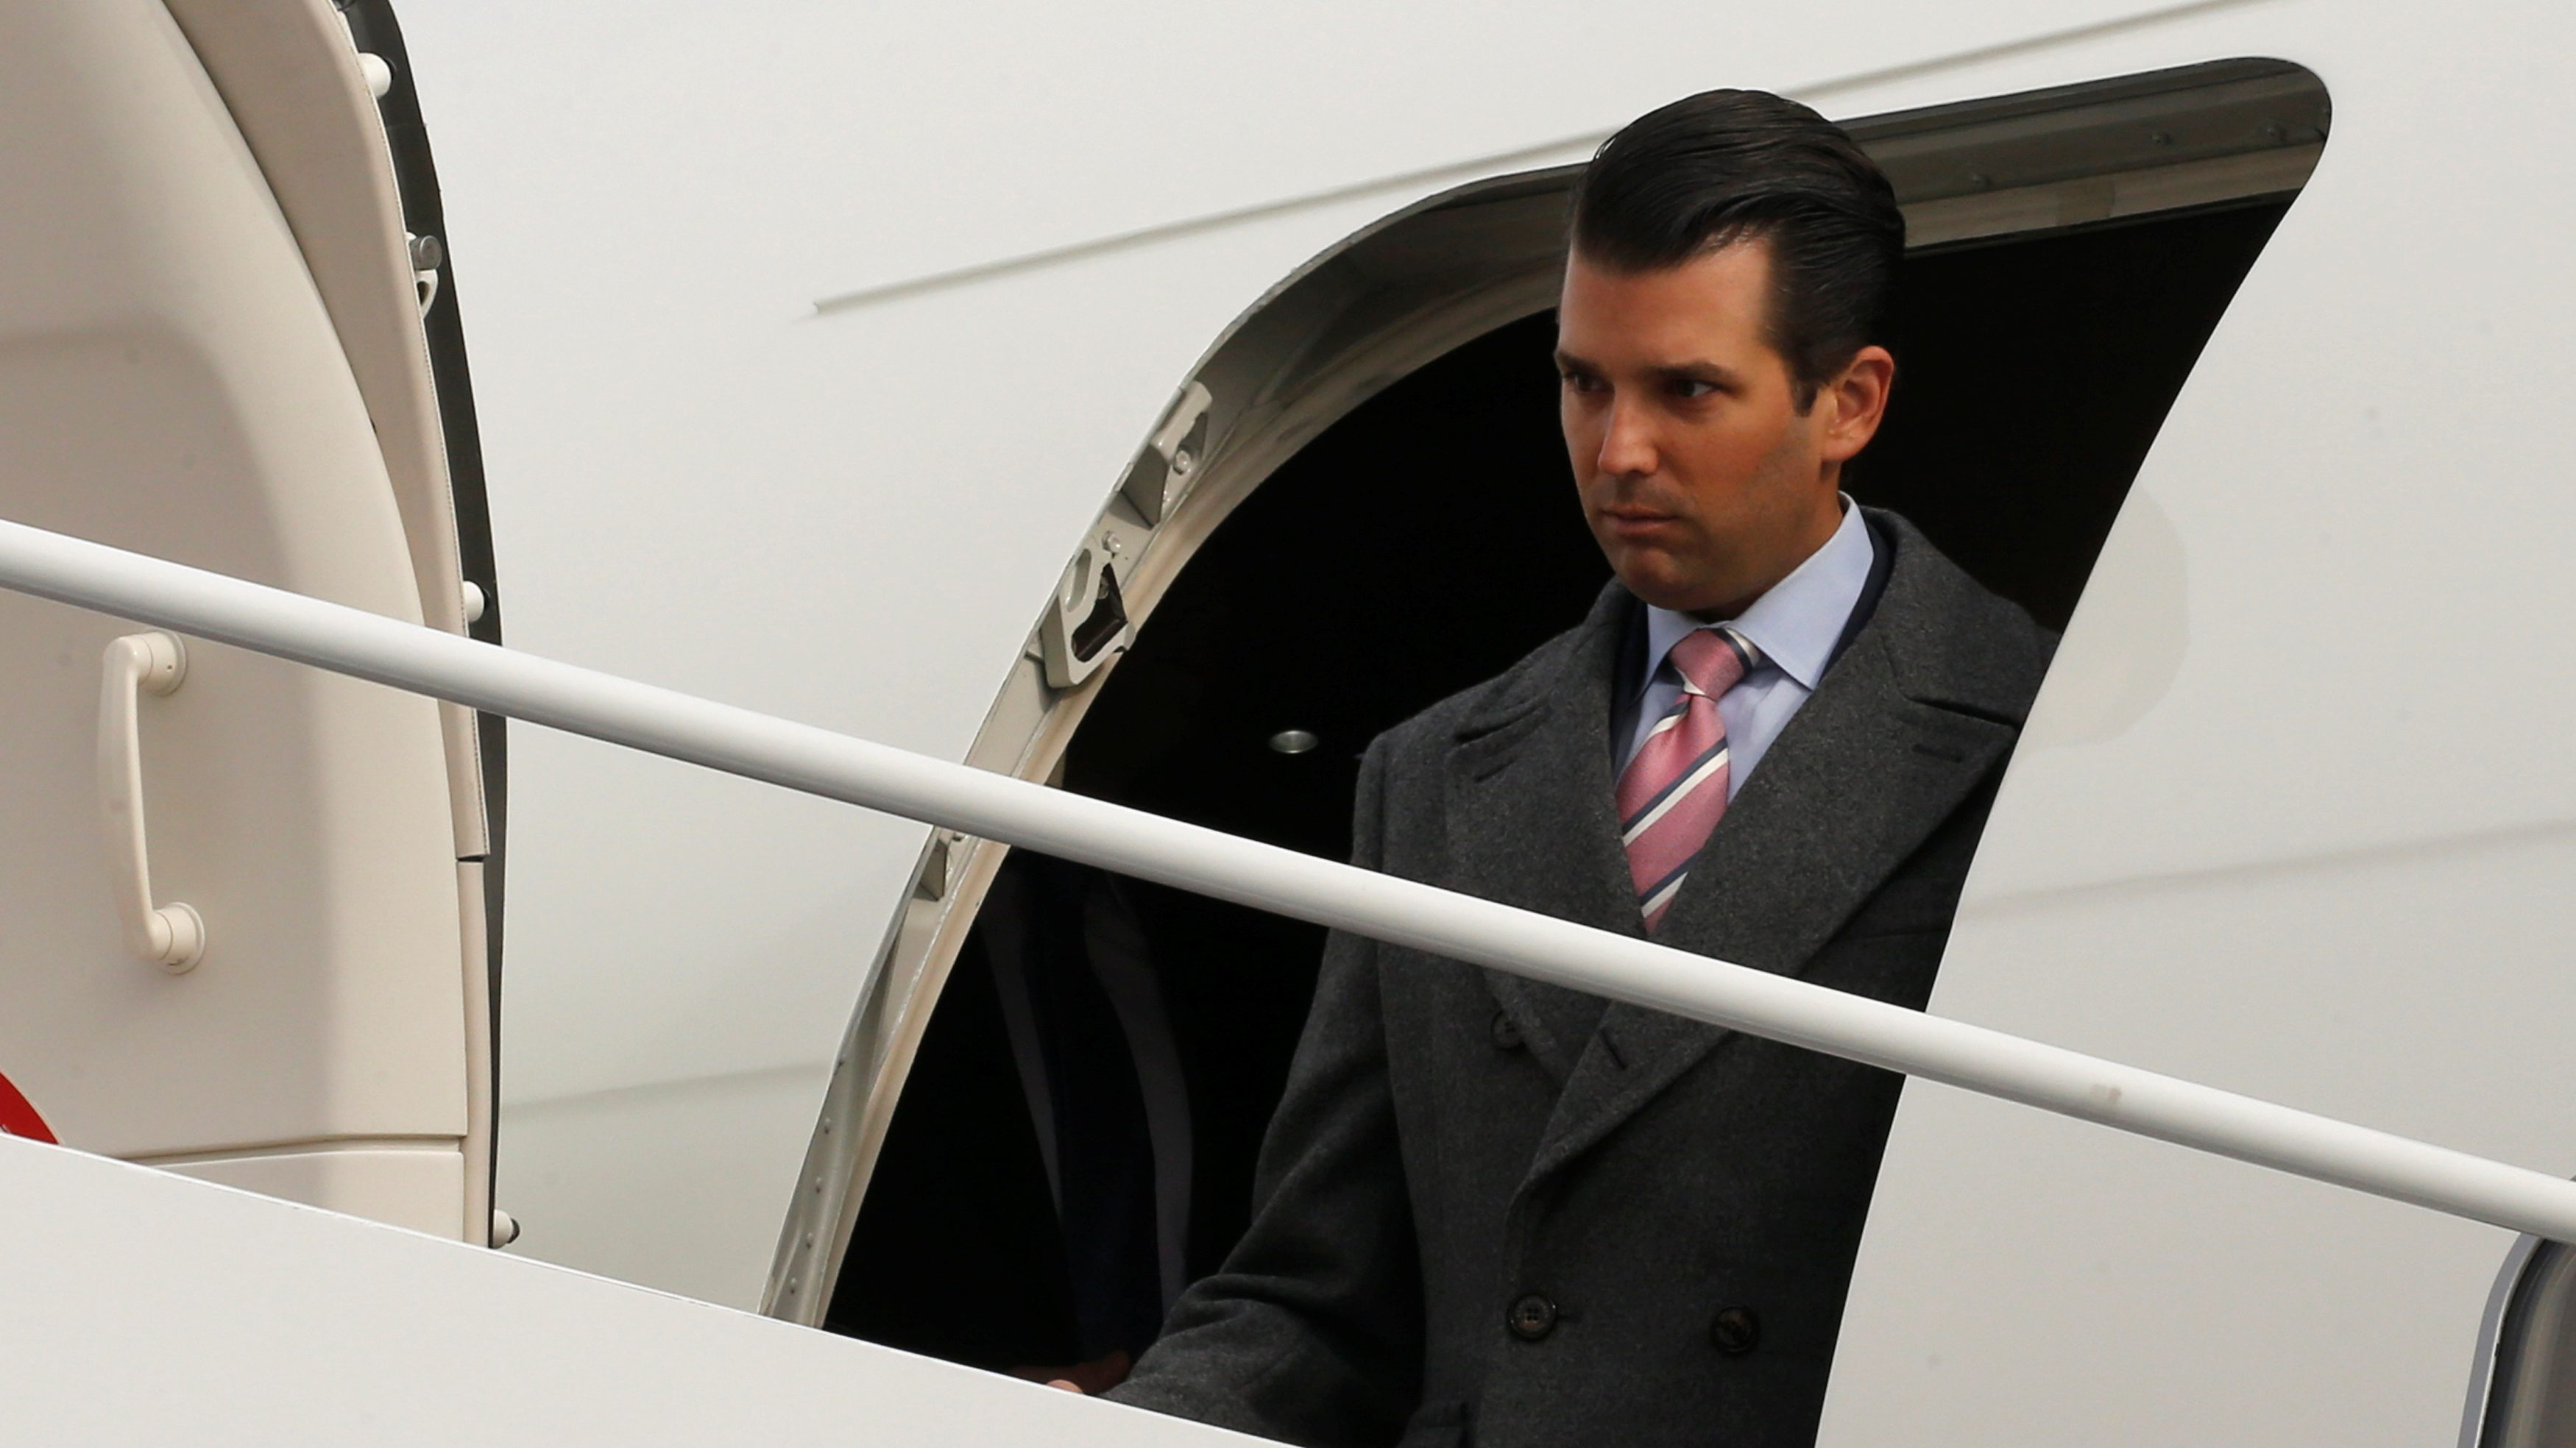 U.S. President-elect Donald Trump's son Donald Trump Jr. arrives ahead of the inauguration with his father aboard a U.S. Air Force jet at Joint Base Andrews, Maryland, U.S. January 19, 2017.